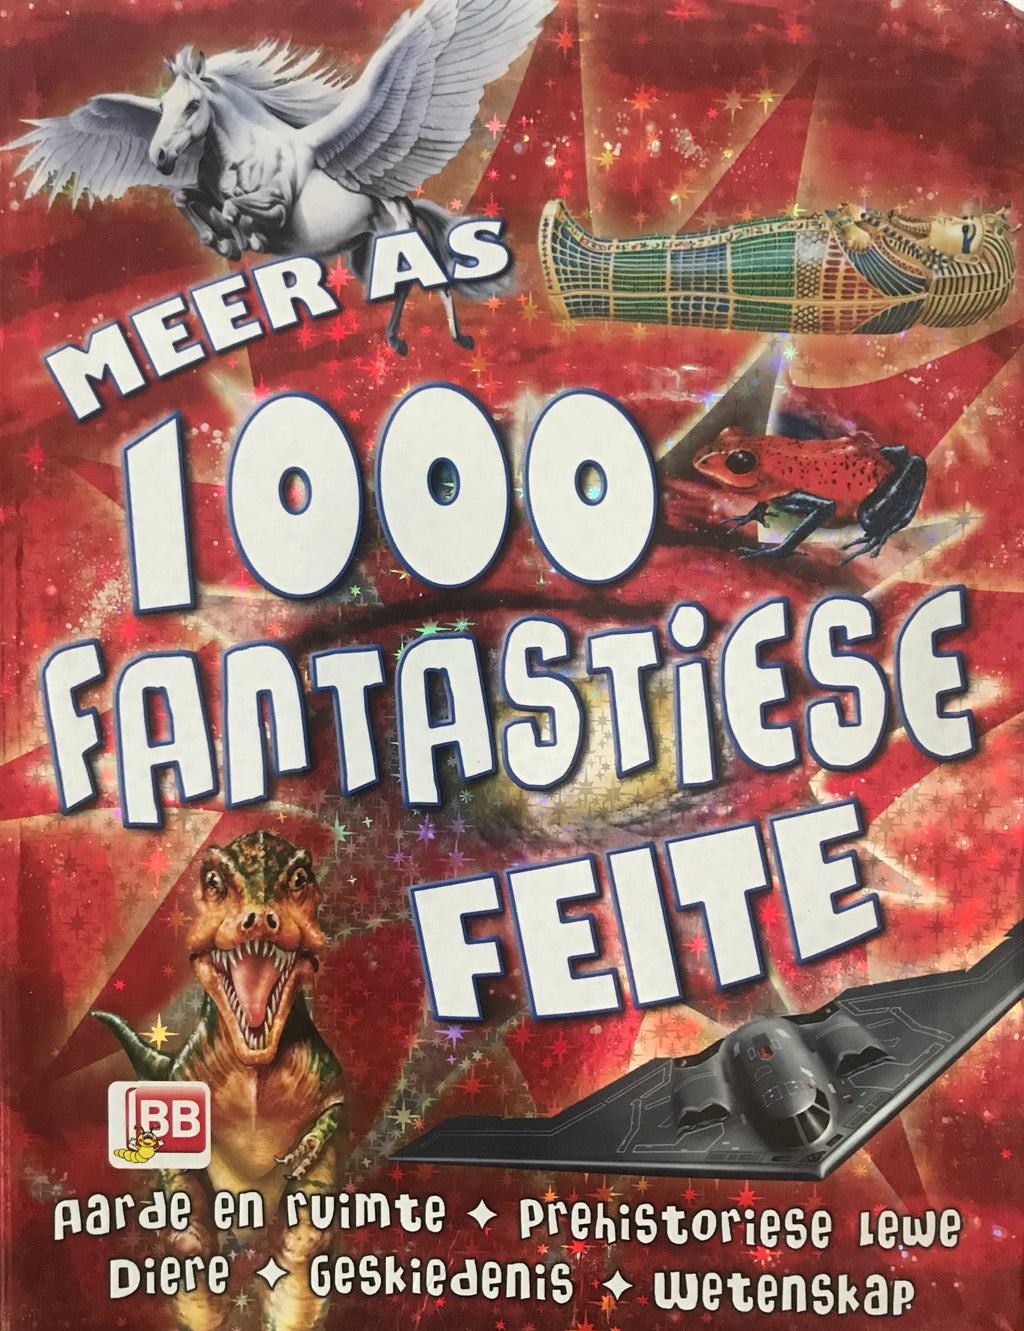 Meer as 1000 Fantastiese Feite